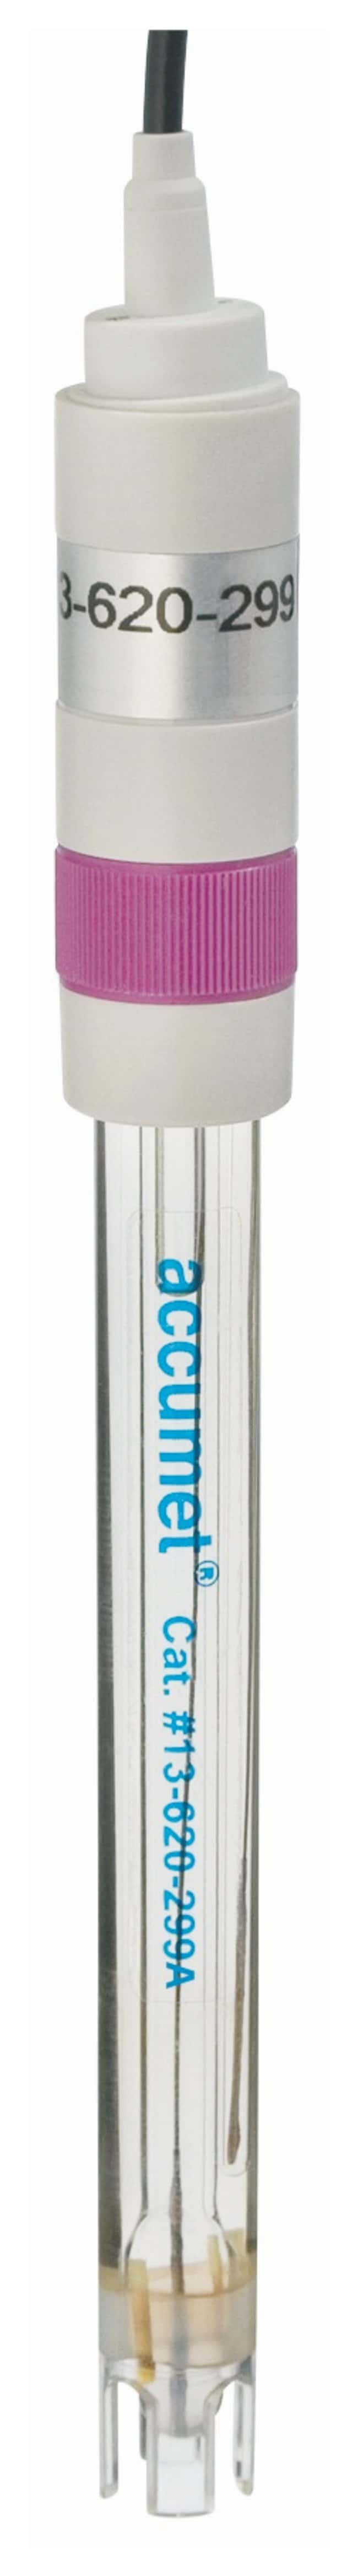 Fisherbrand™accumet™ Gel-Filled Paper Pulp Double-Junction pH Combination Electrodes: Mercury-Free